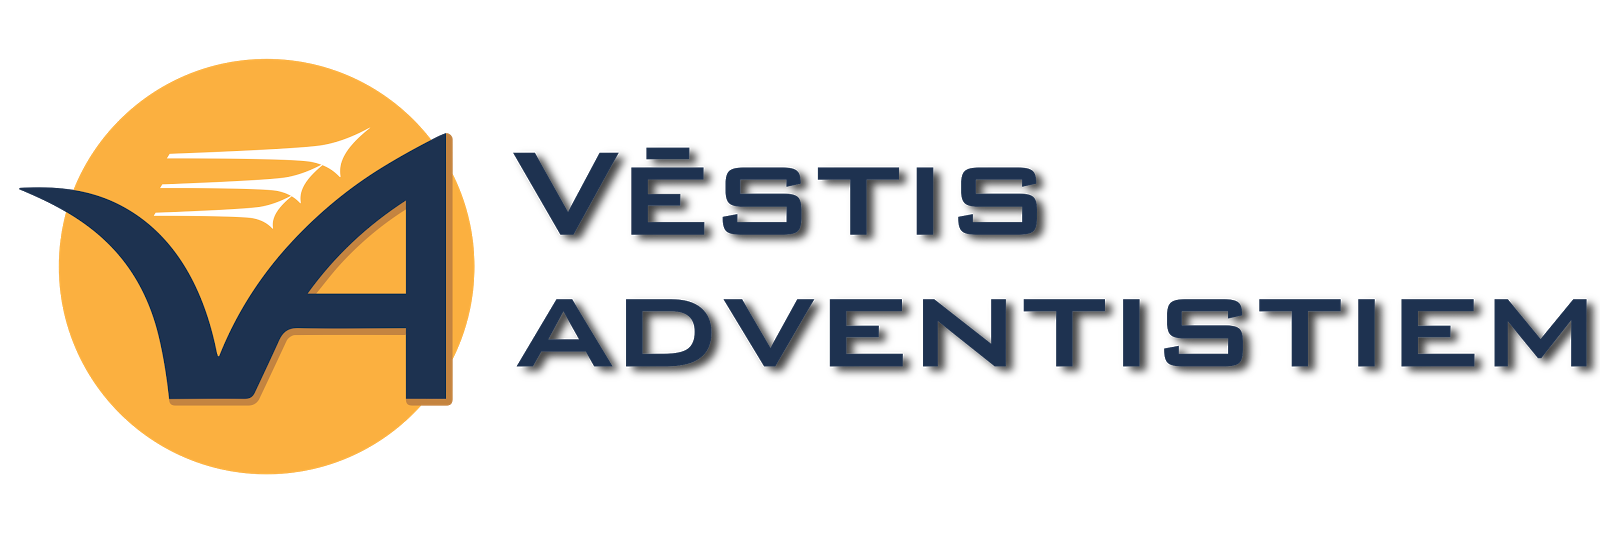 Vēstis Adventistiem BLOGS